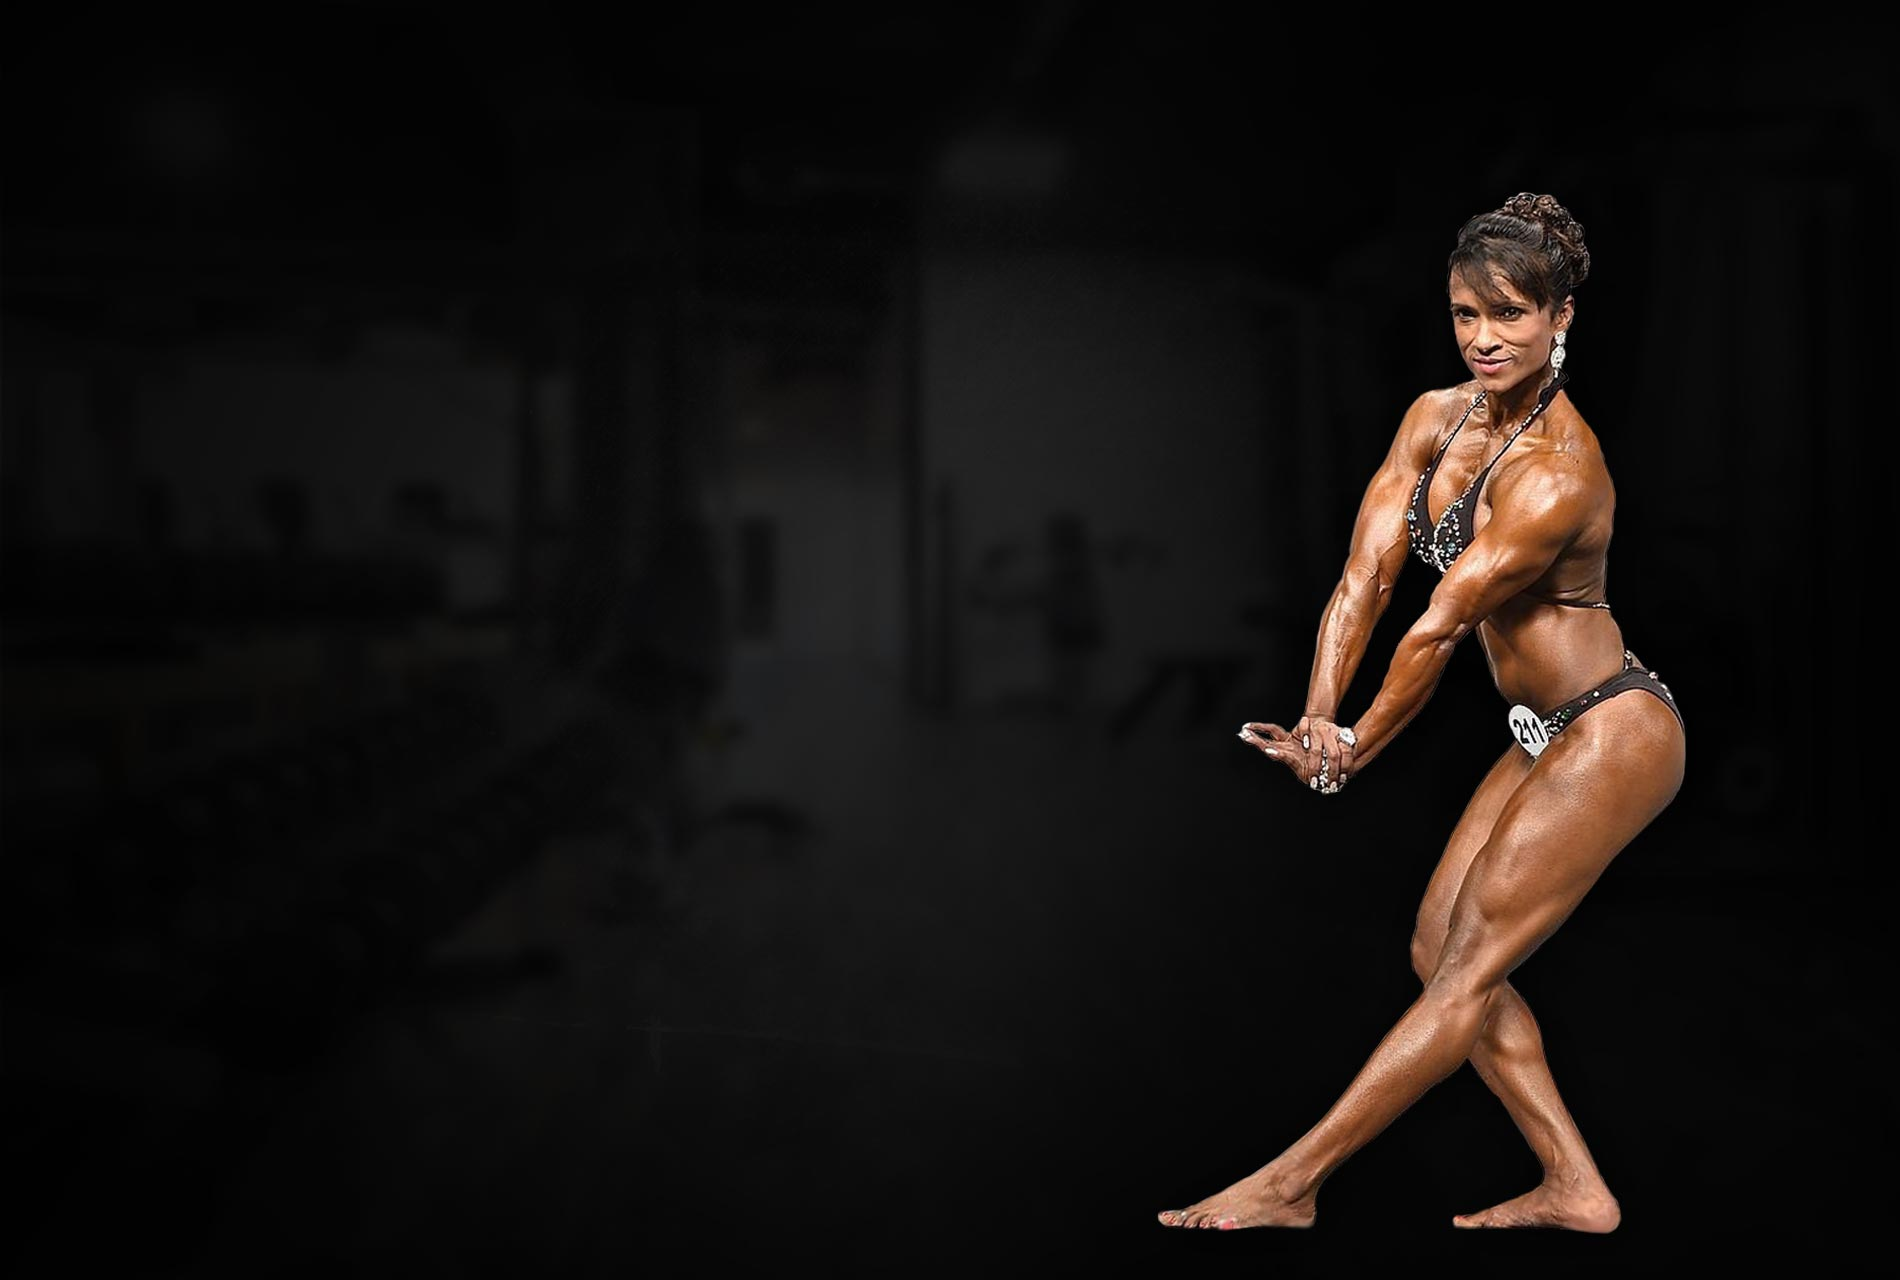 Image result for Karuna waghmare bodybuilder